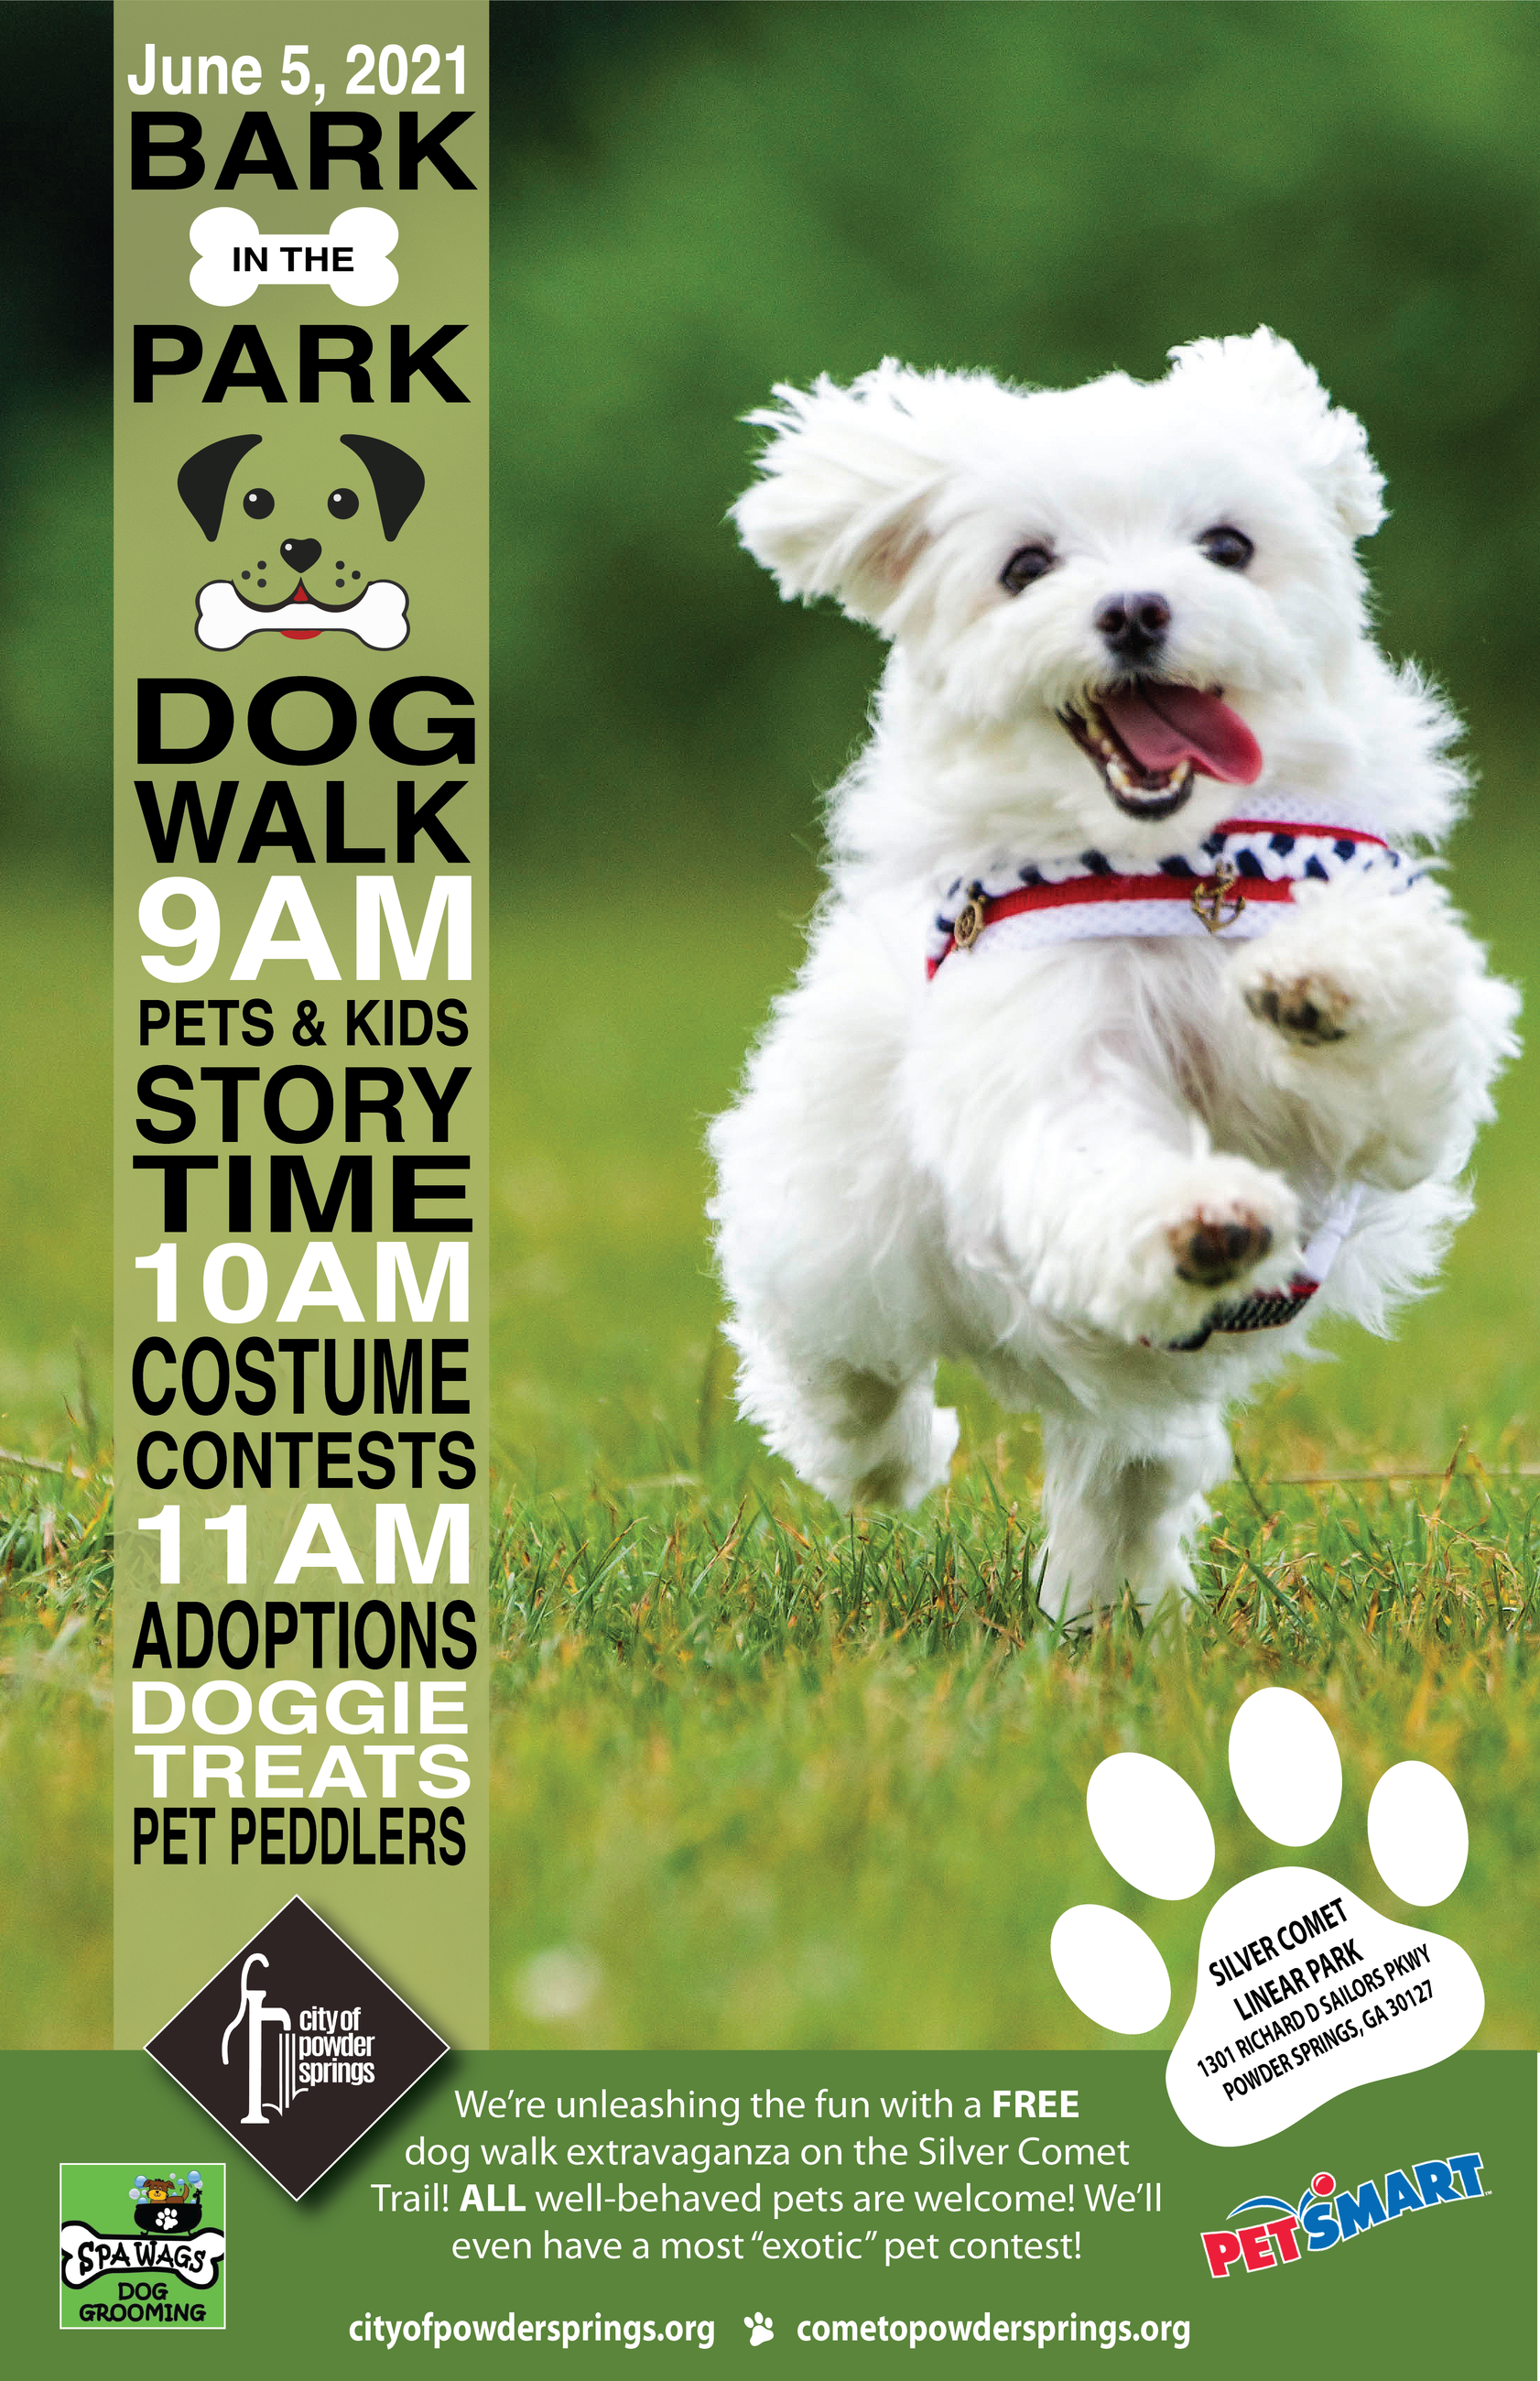 Poster with Small white dog running through grass and information about Bark in the Park event